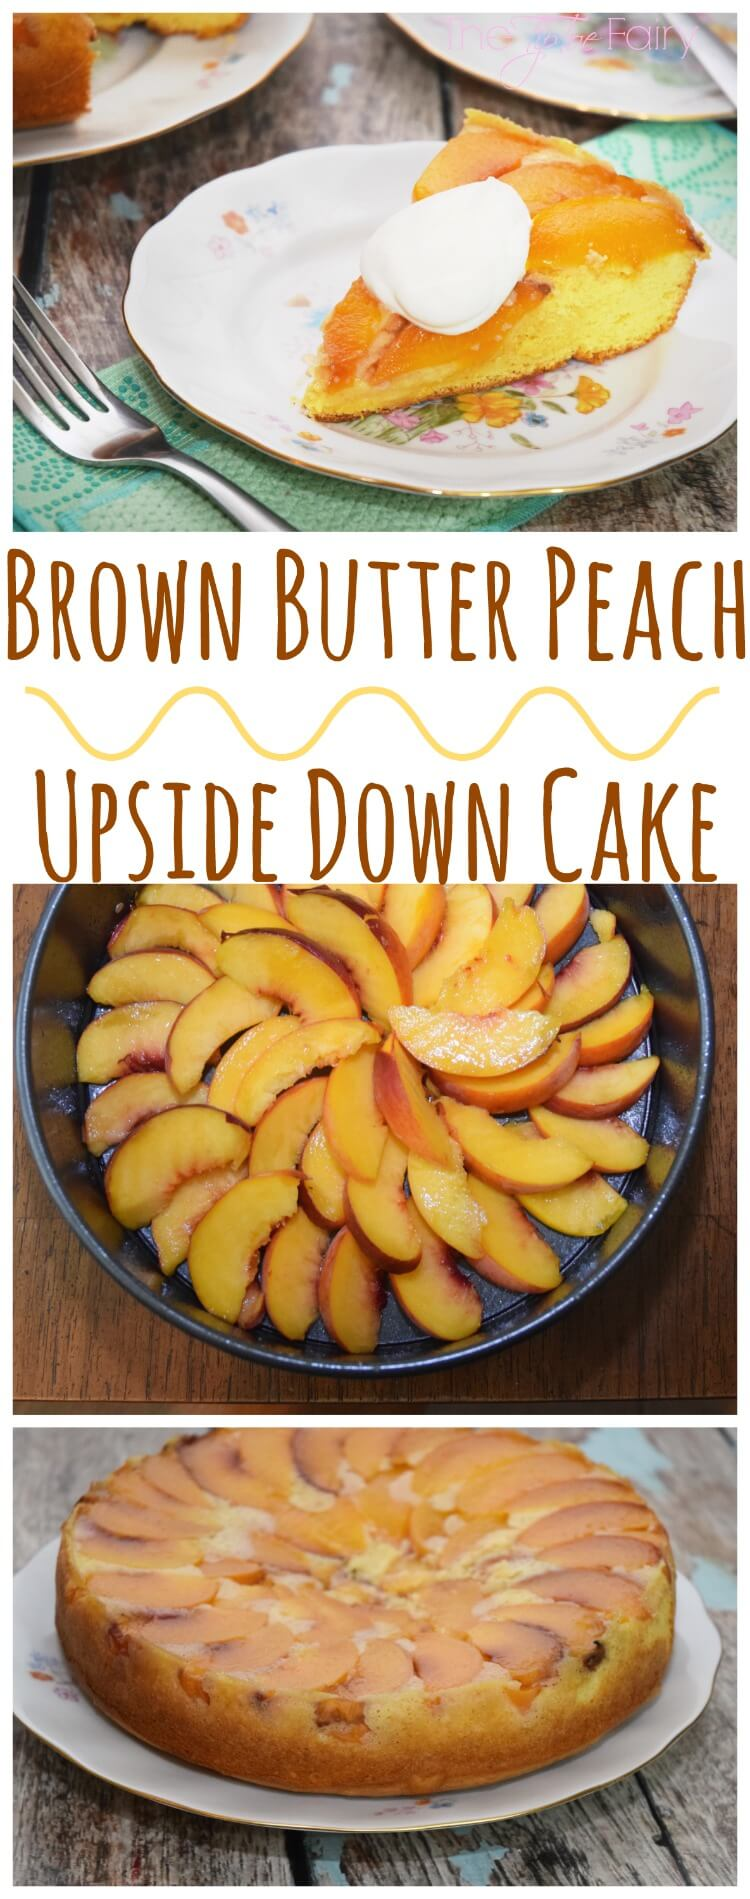 Brown Butter Peach Upside Down Cake Amp Clean Up A